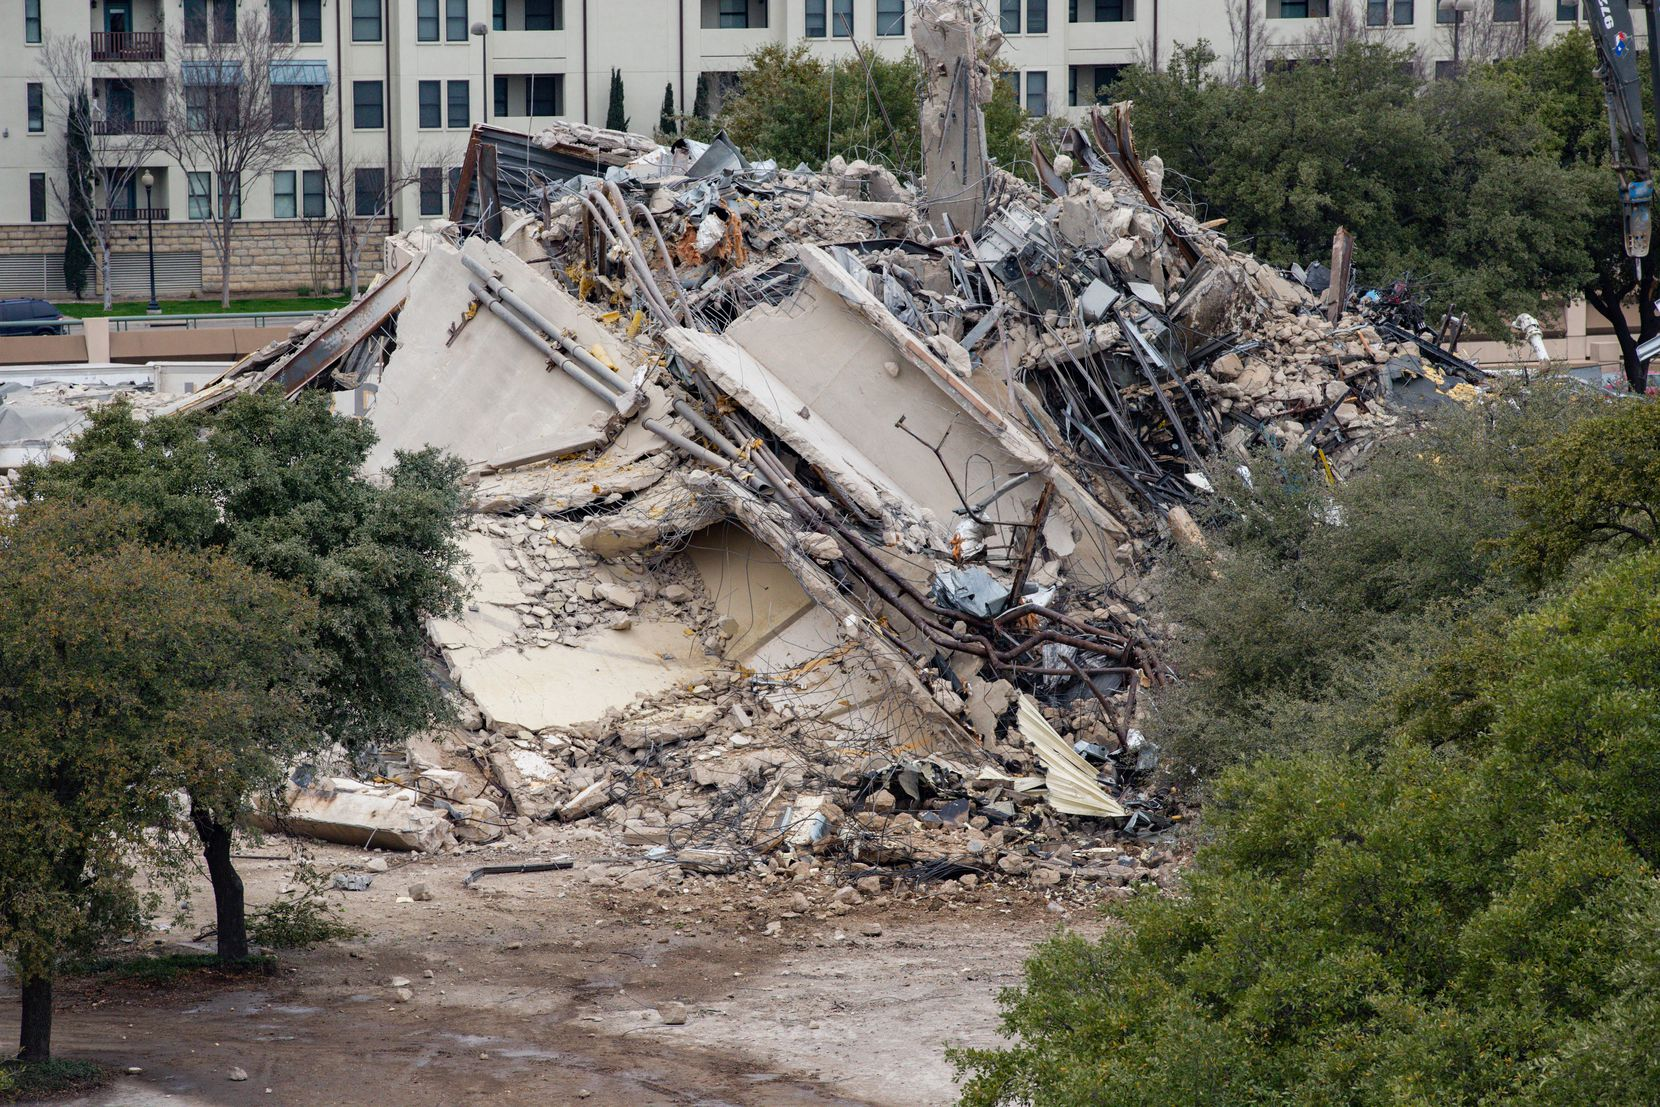 The remains of the Affiliated Computer Services building, or the Leaning to Tower of Dallas, at 2828 N. Haskell Ave. after finally falling over on Mar. 02, 2020, in Dallas. (Juan Figueroa/The Dallas Morning News)